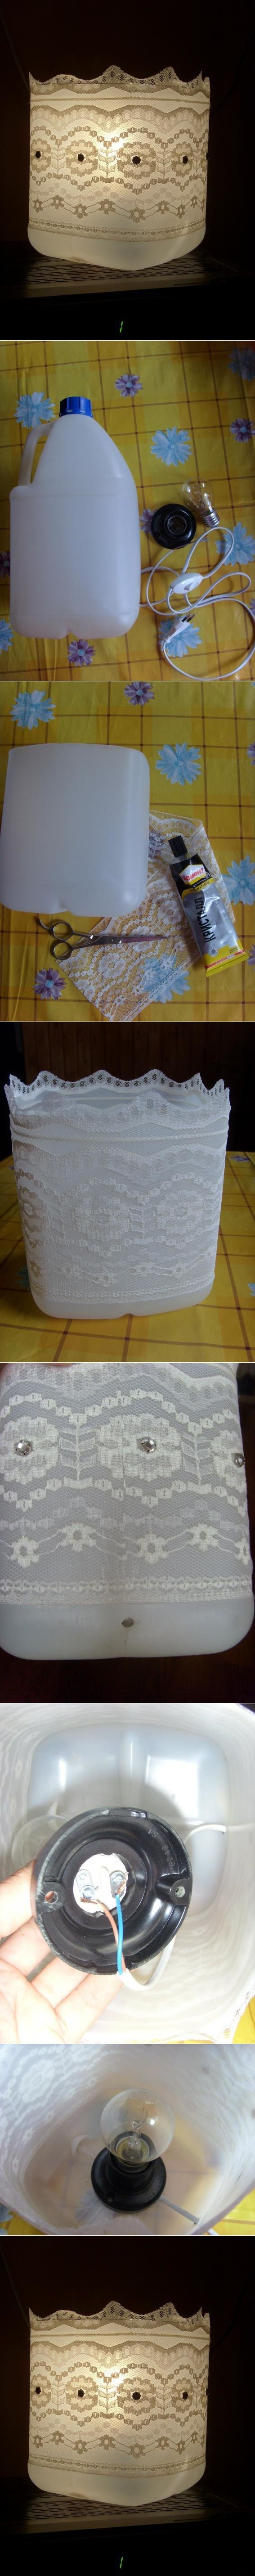 lamp from plastic bottle tutorial wedding decoration?: